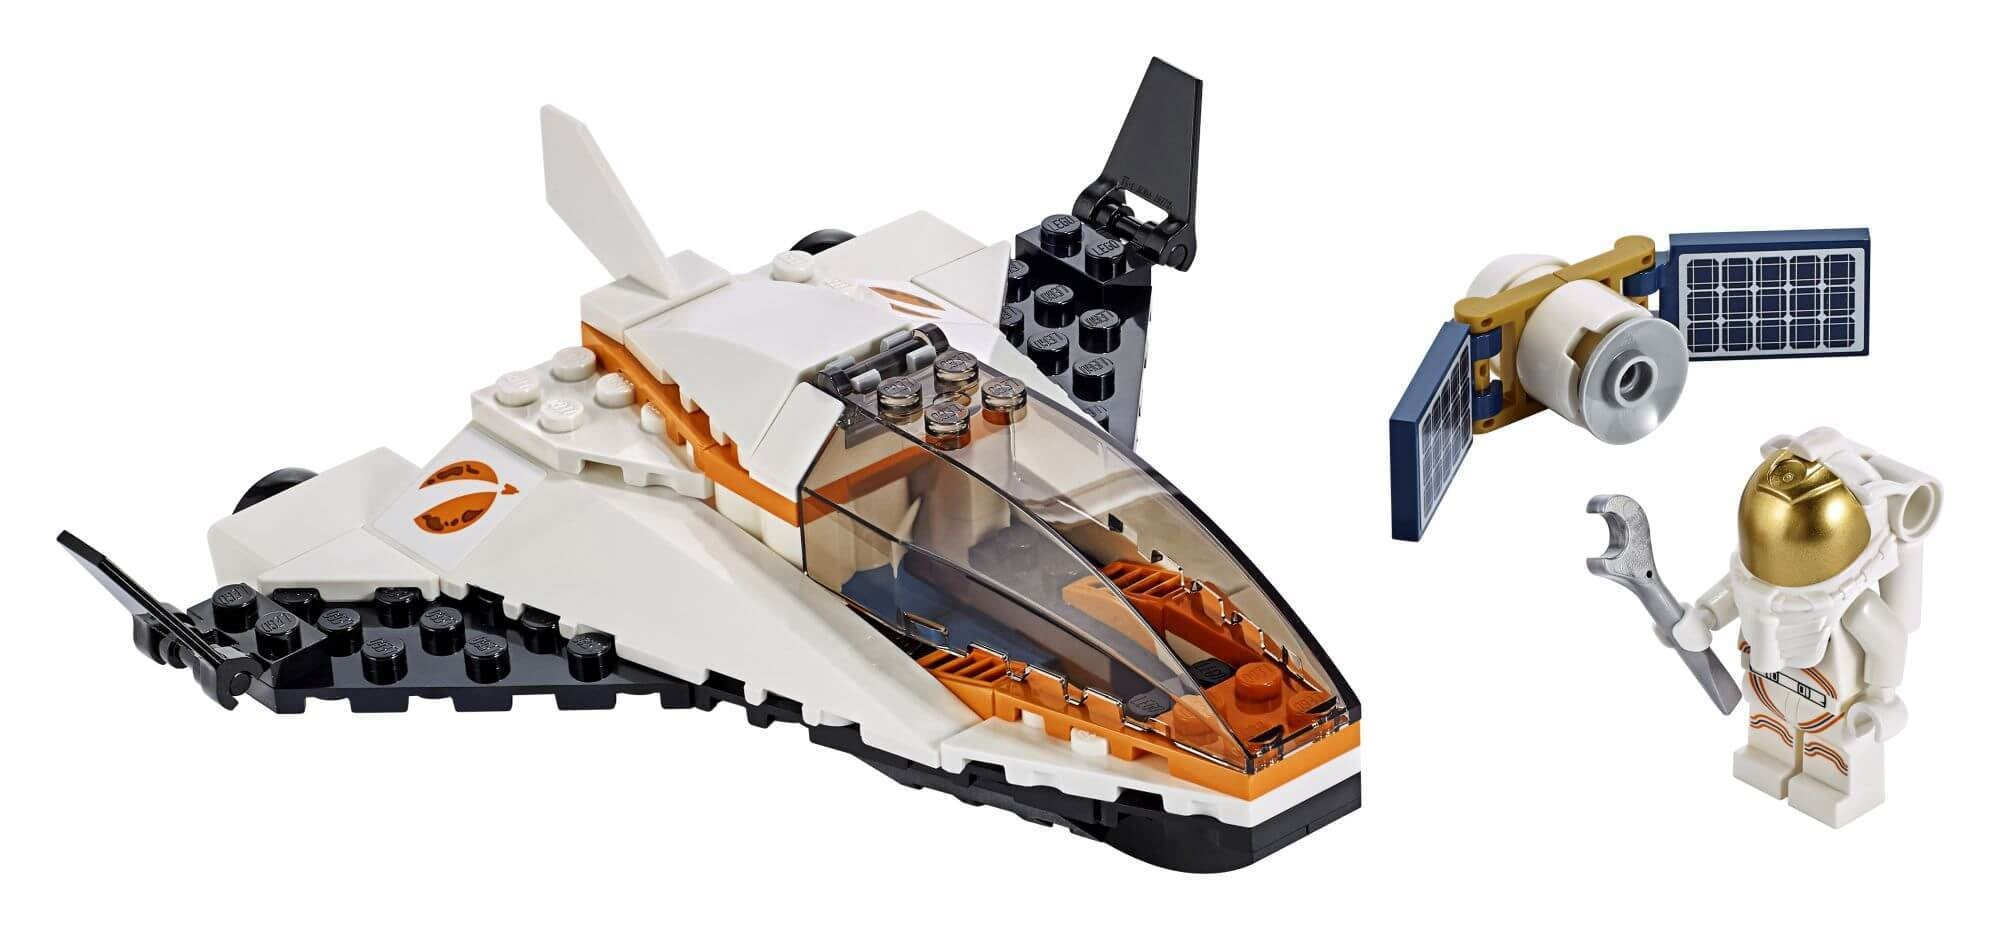 LEGO City Space Port 60224 Satelliettransportmissie